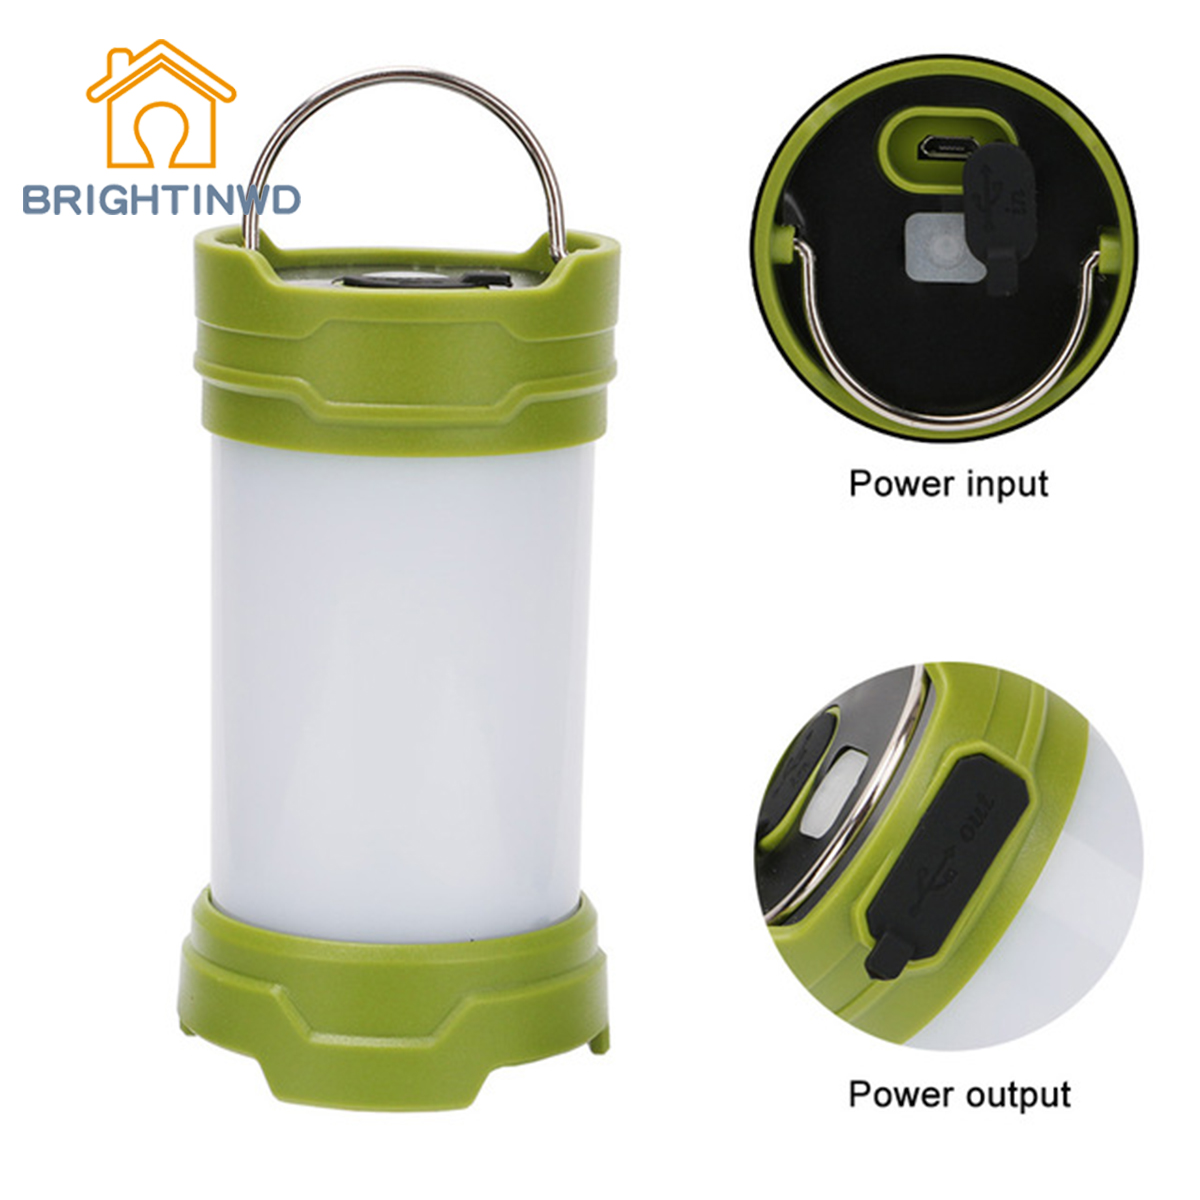 BRIGHTINWD 30 LED Camping Lanterns Tent Light USB Rechargeable Flashlight For Hiking Camping Emergencies Portable Lantern